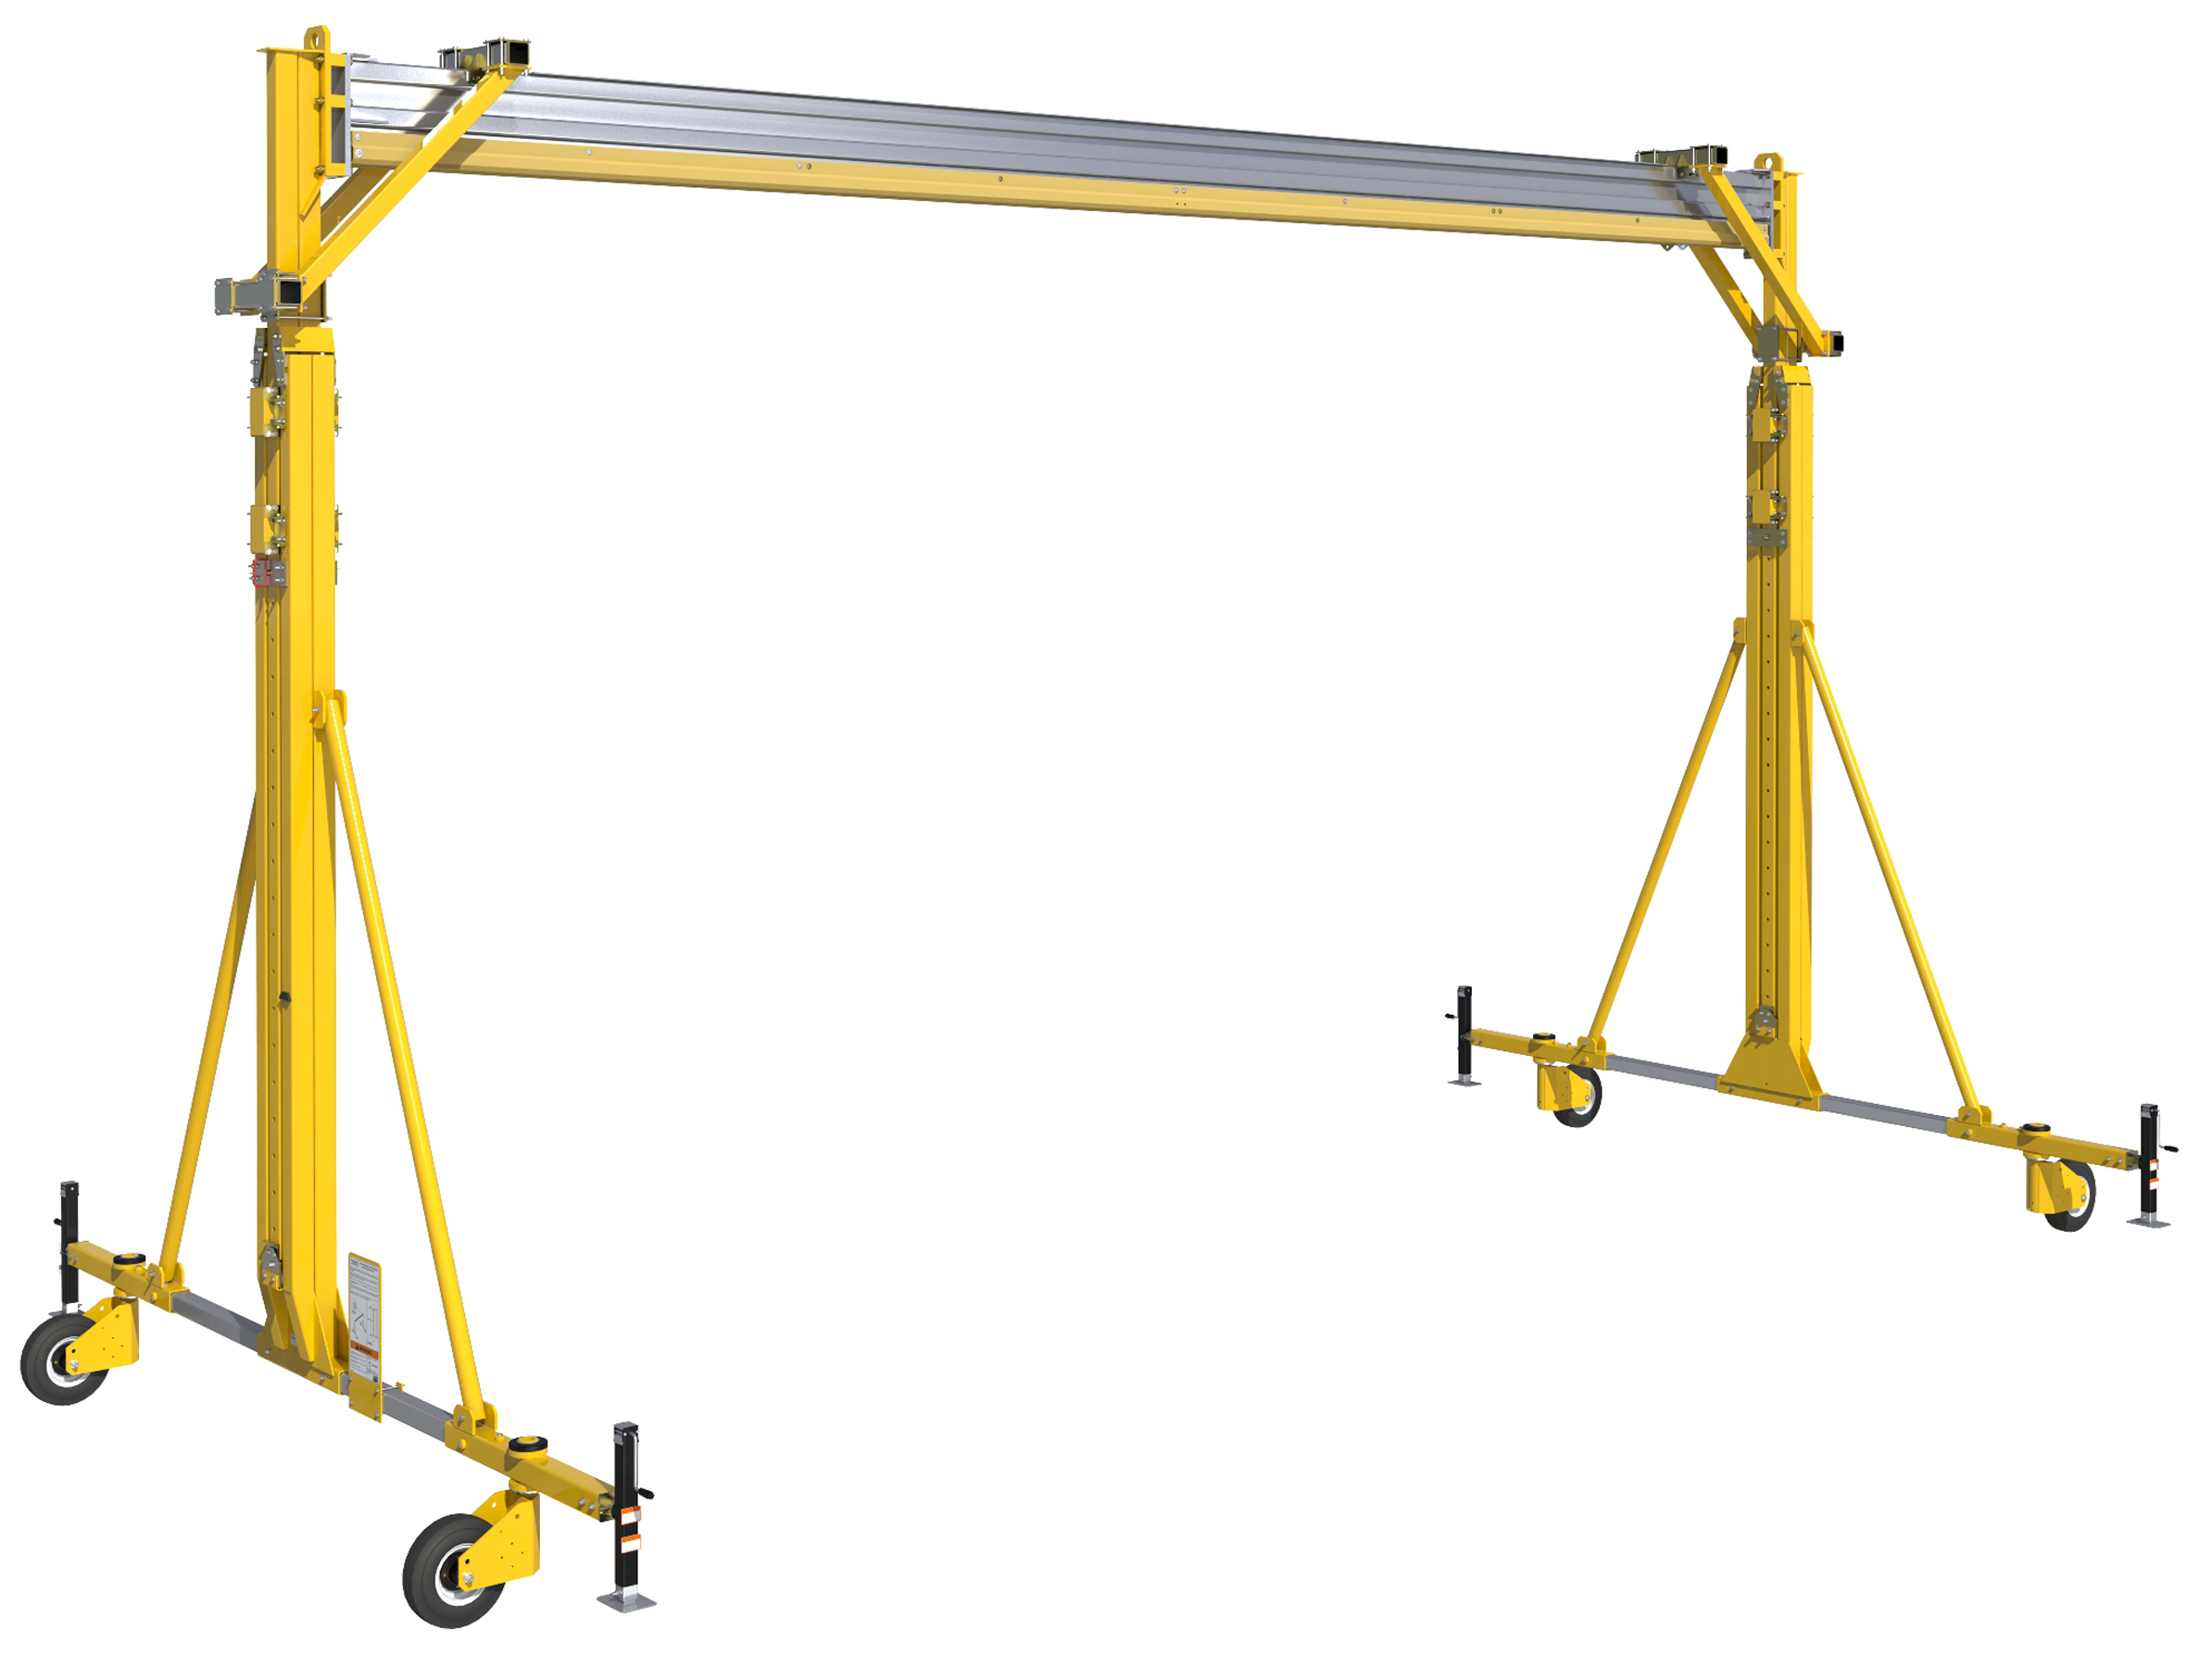 FlexiGuard Portable A-Frame Fall Arrest System Adjustable Height, Lowered